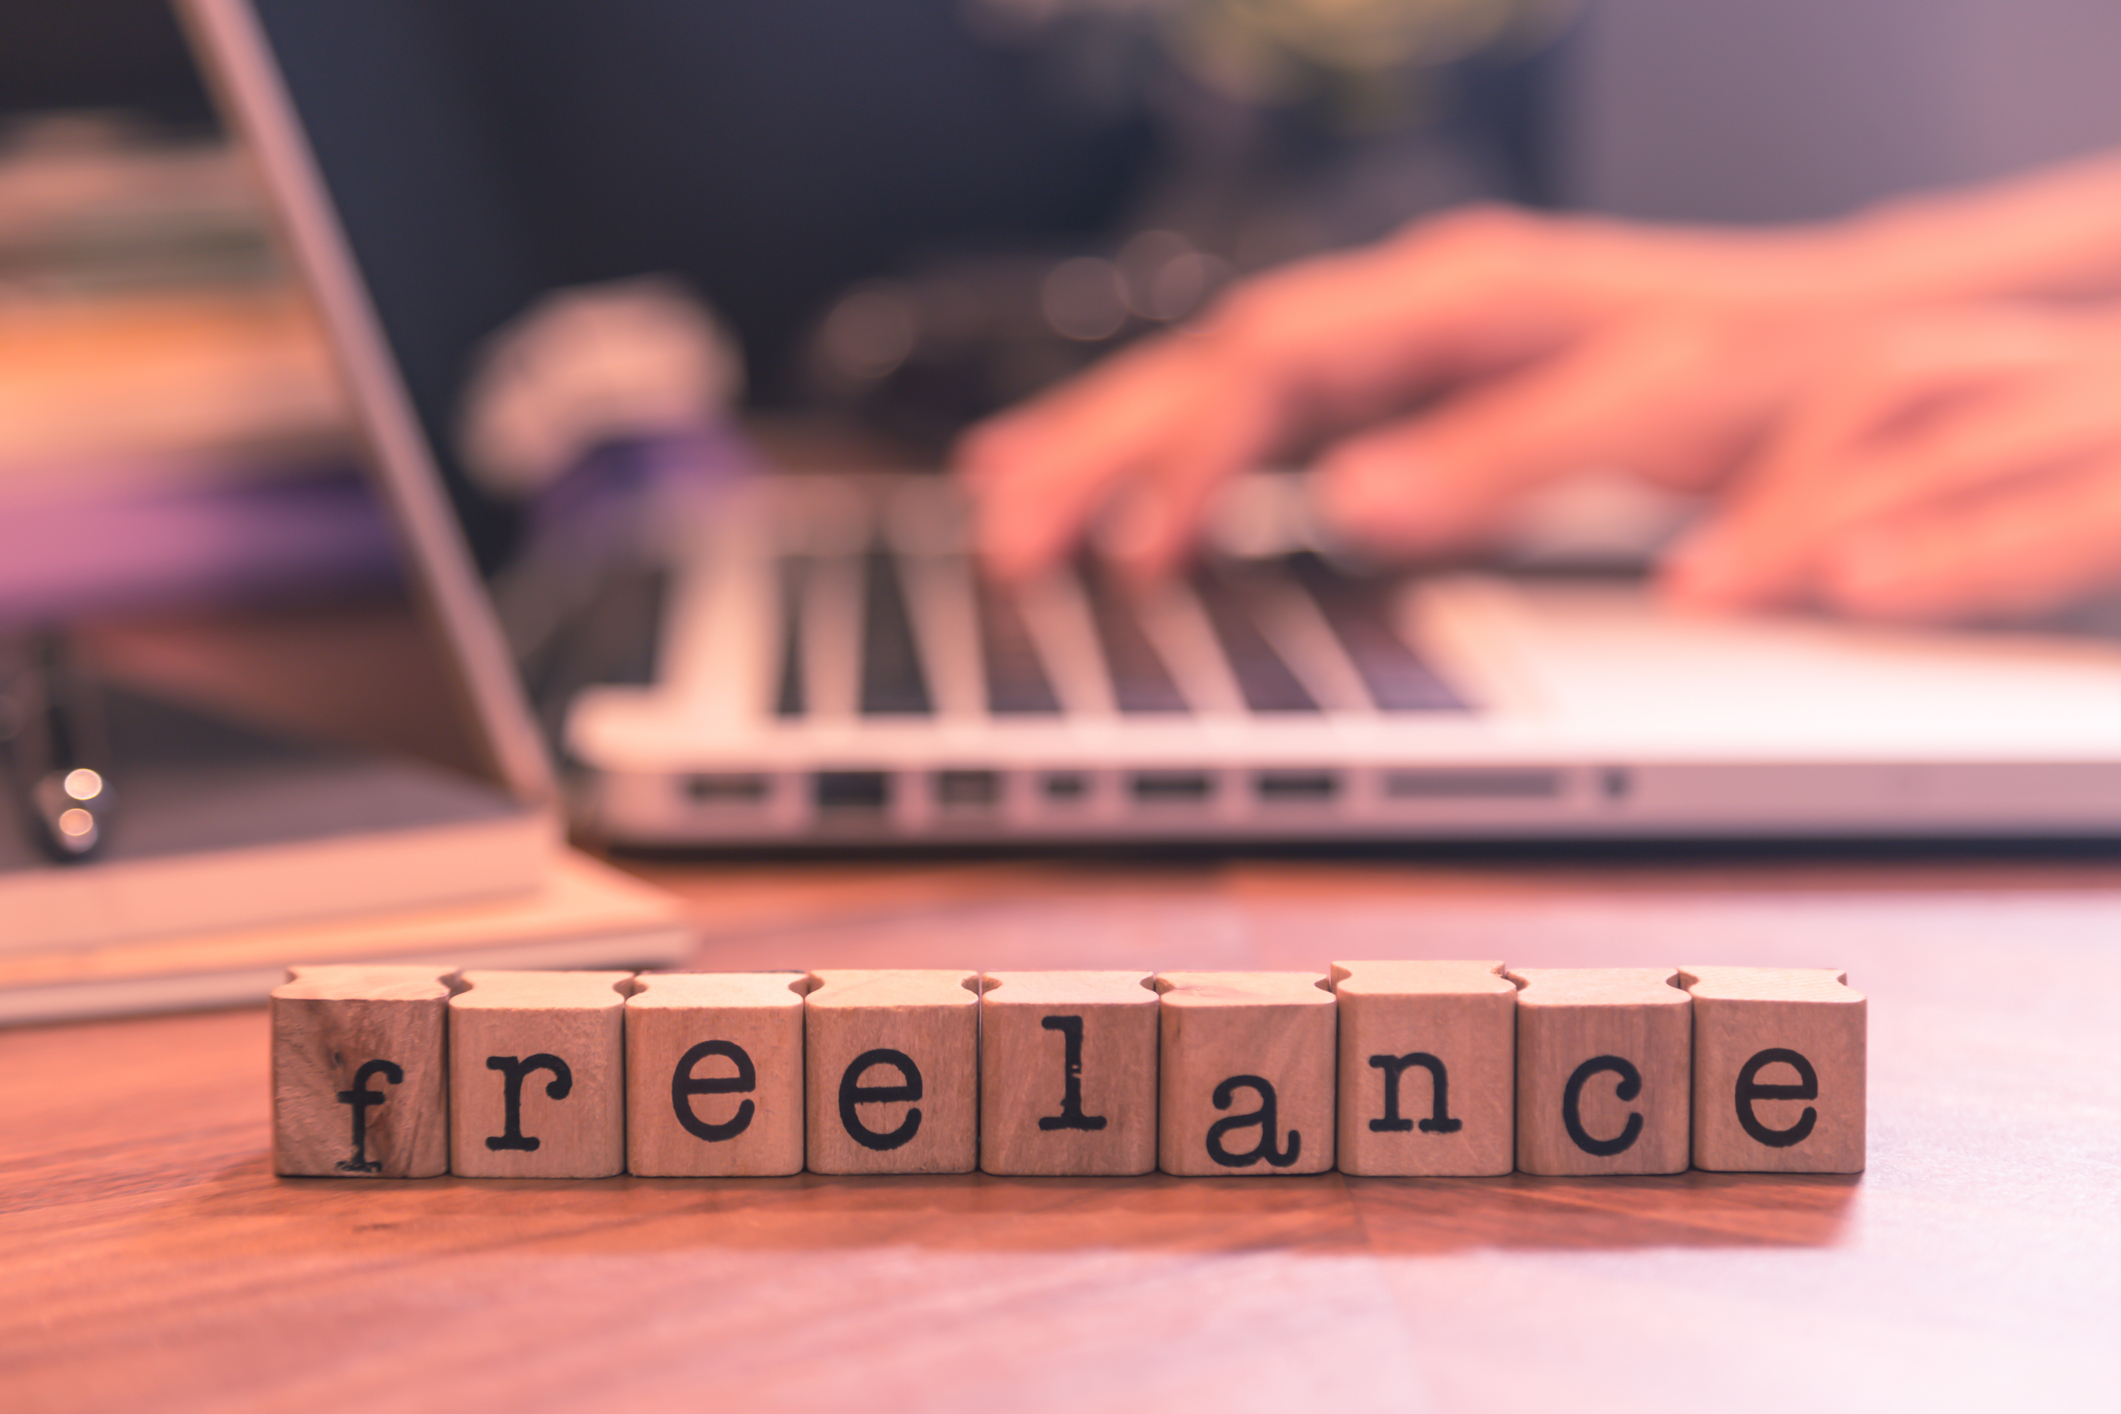 freelance writer - California law - Virtual Vocations telecommute and remote jobs